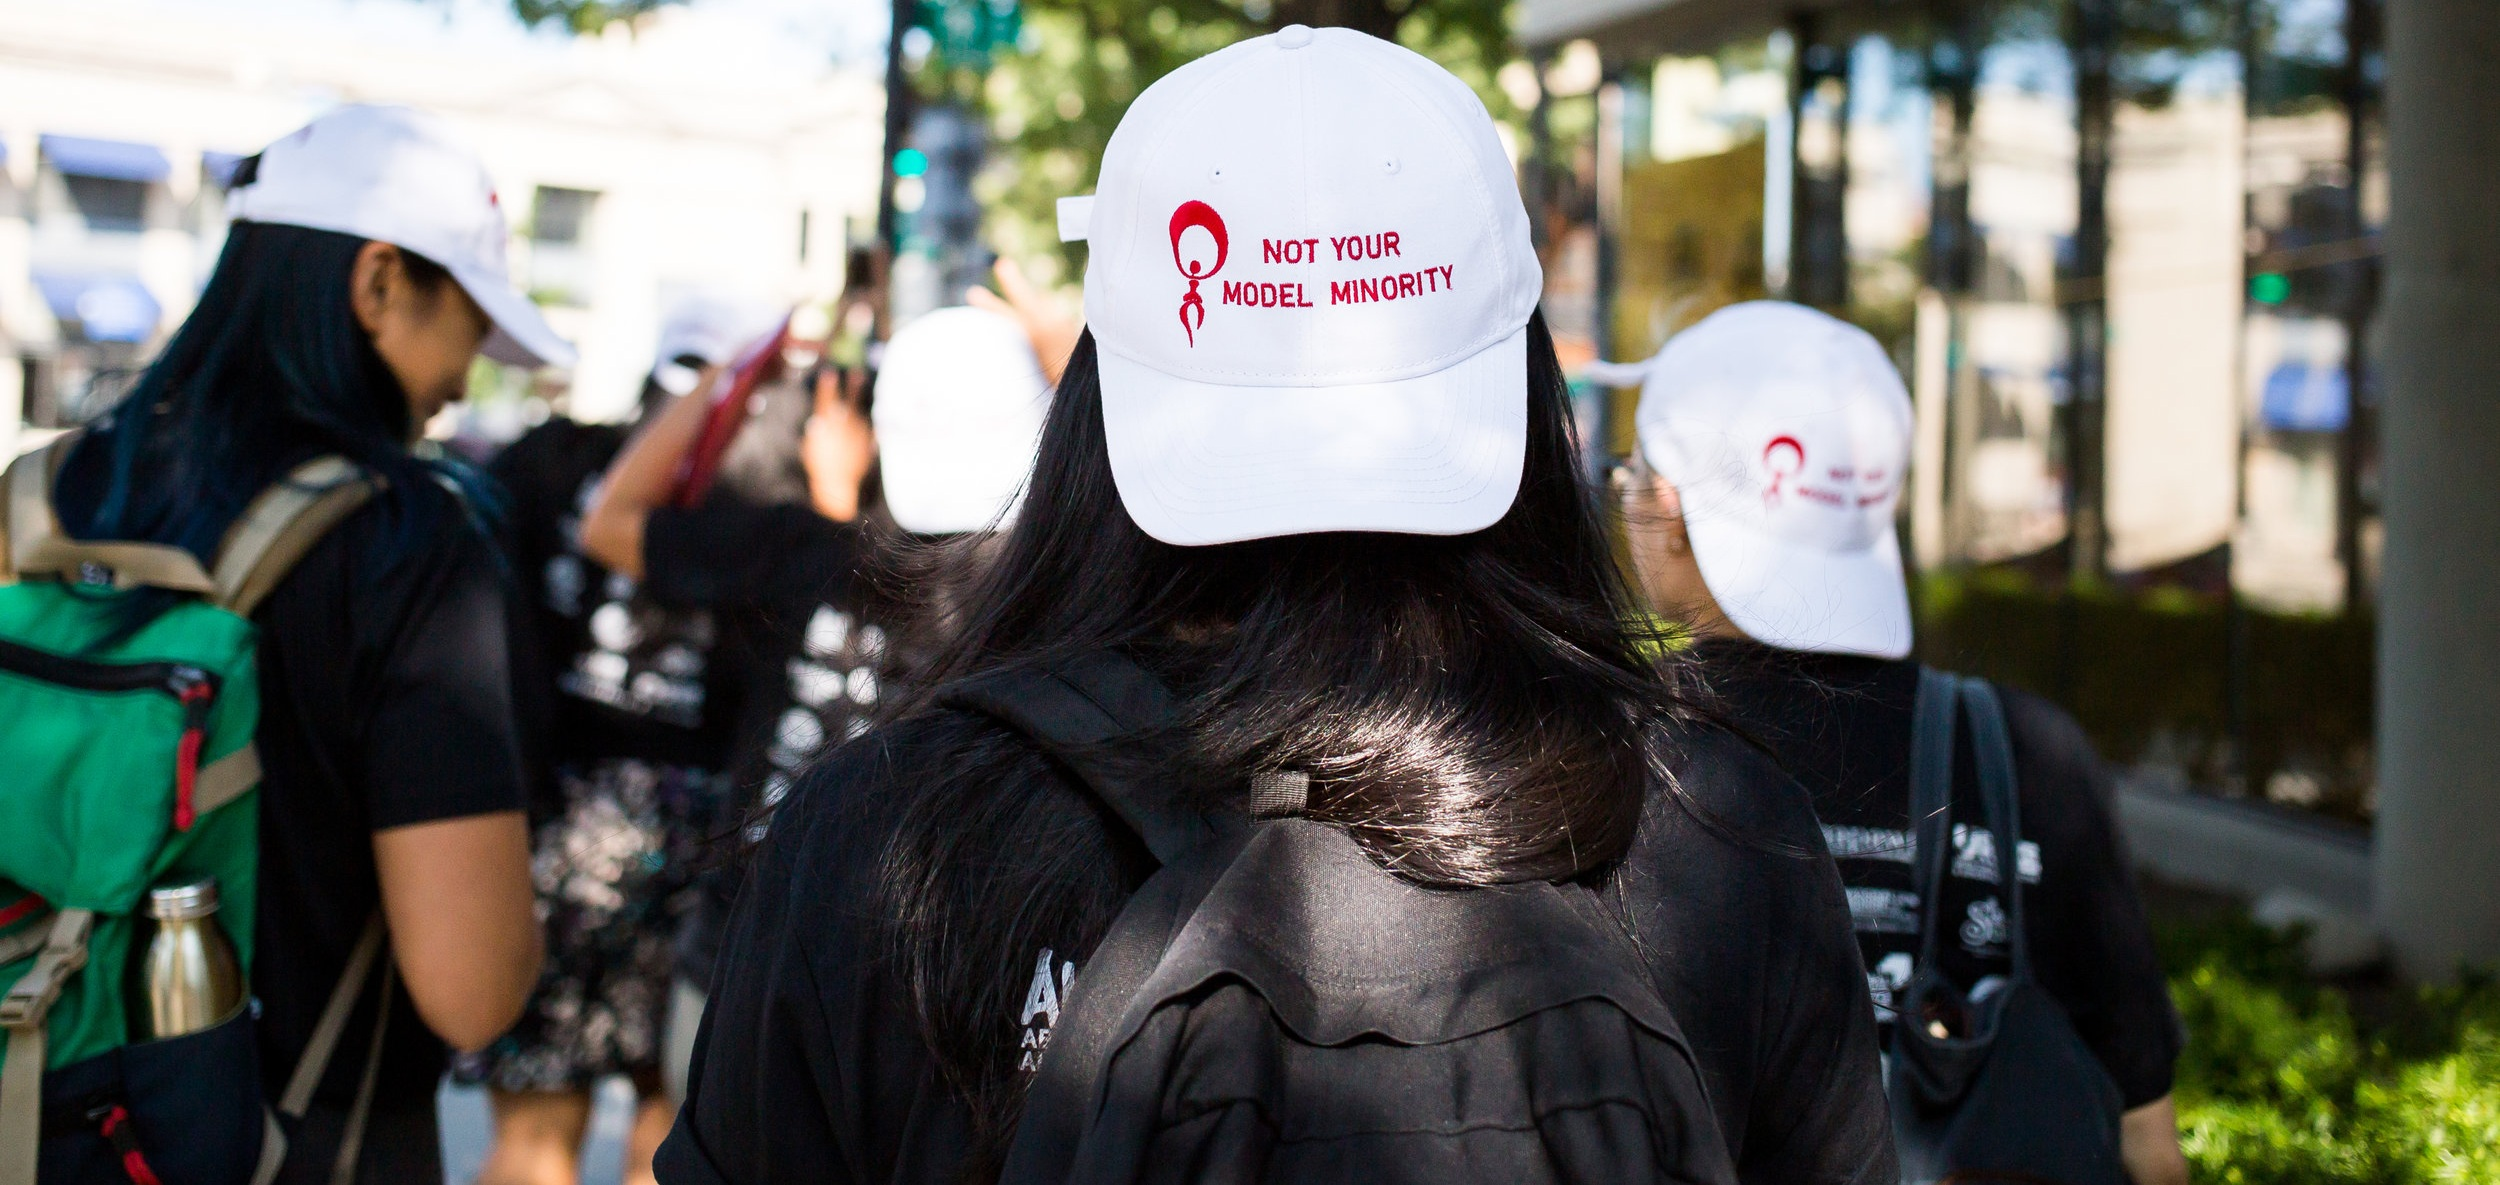 "A woman with flowing black hair is wearing a cap that reads ""NOT YOUR MODEL MINORITY."" The cap is worn backwards, and several other people are wearing the same hat in the background."